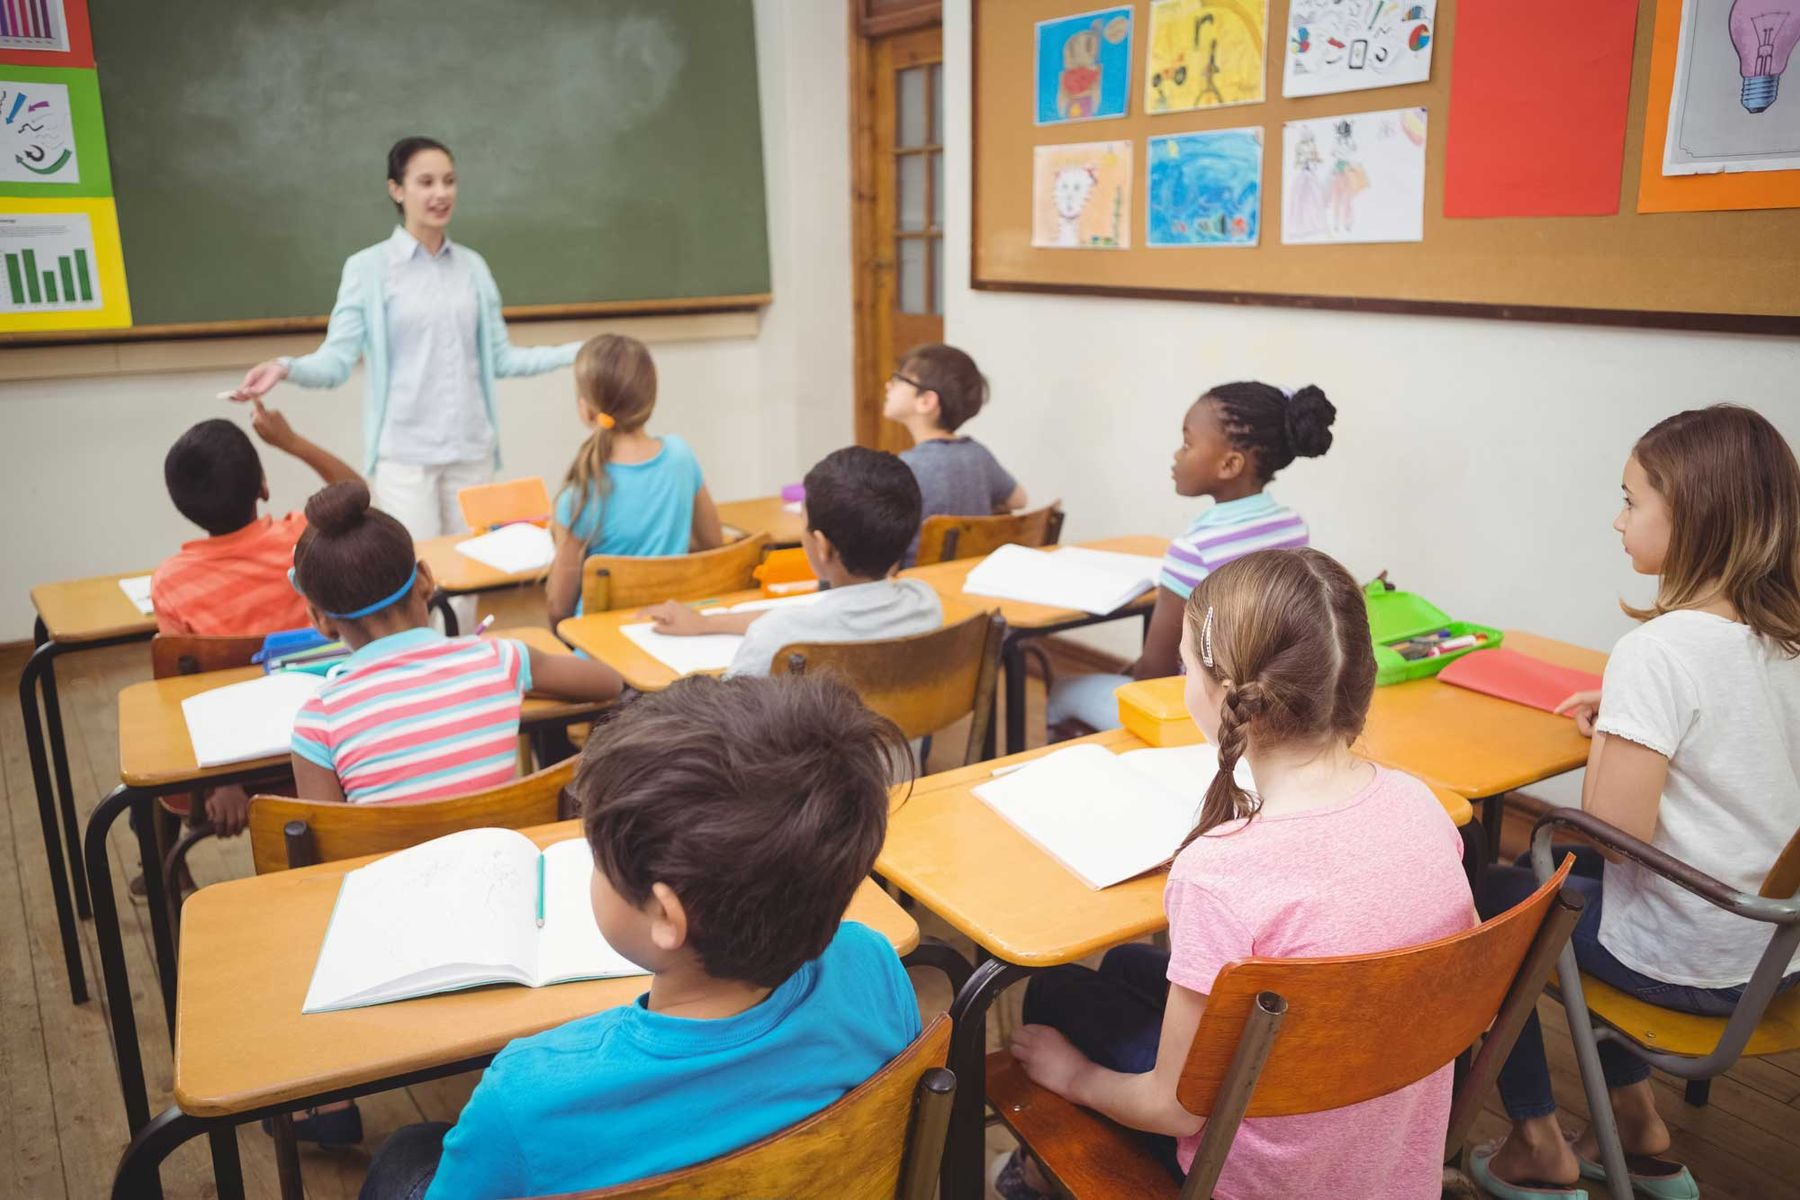 6 THINGS TO DO AS A SCHOOL ADMINISTRATOR TO ENSURE YOUR PREMISES ARE CLEAN, DISINFECTED AND READY TO REOPEN